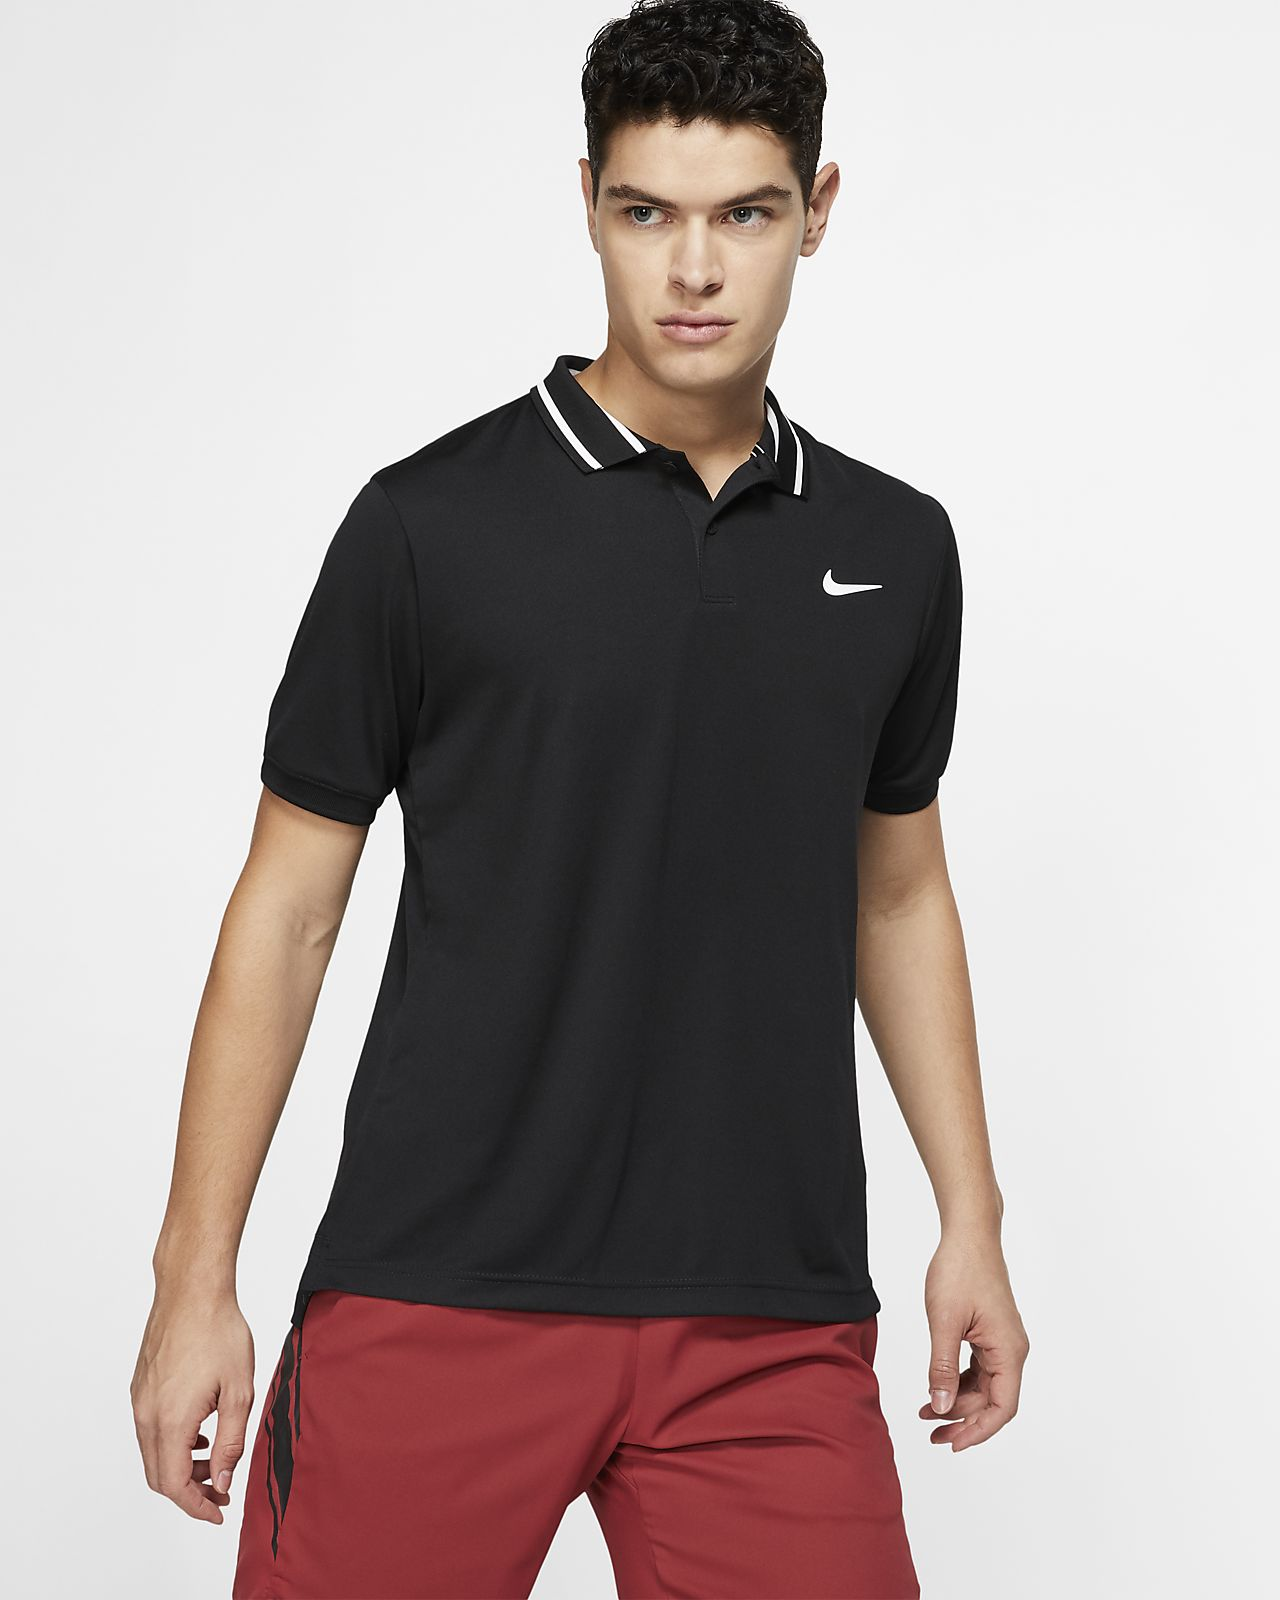 fdffde0ec1 NikeCourt Dri-FIT Men's Tennis Polo. Nike.com HU